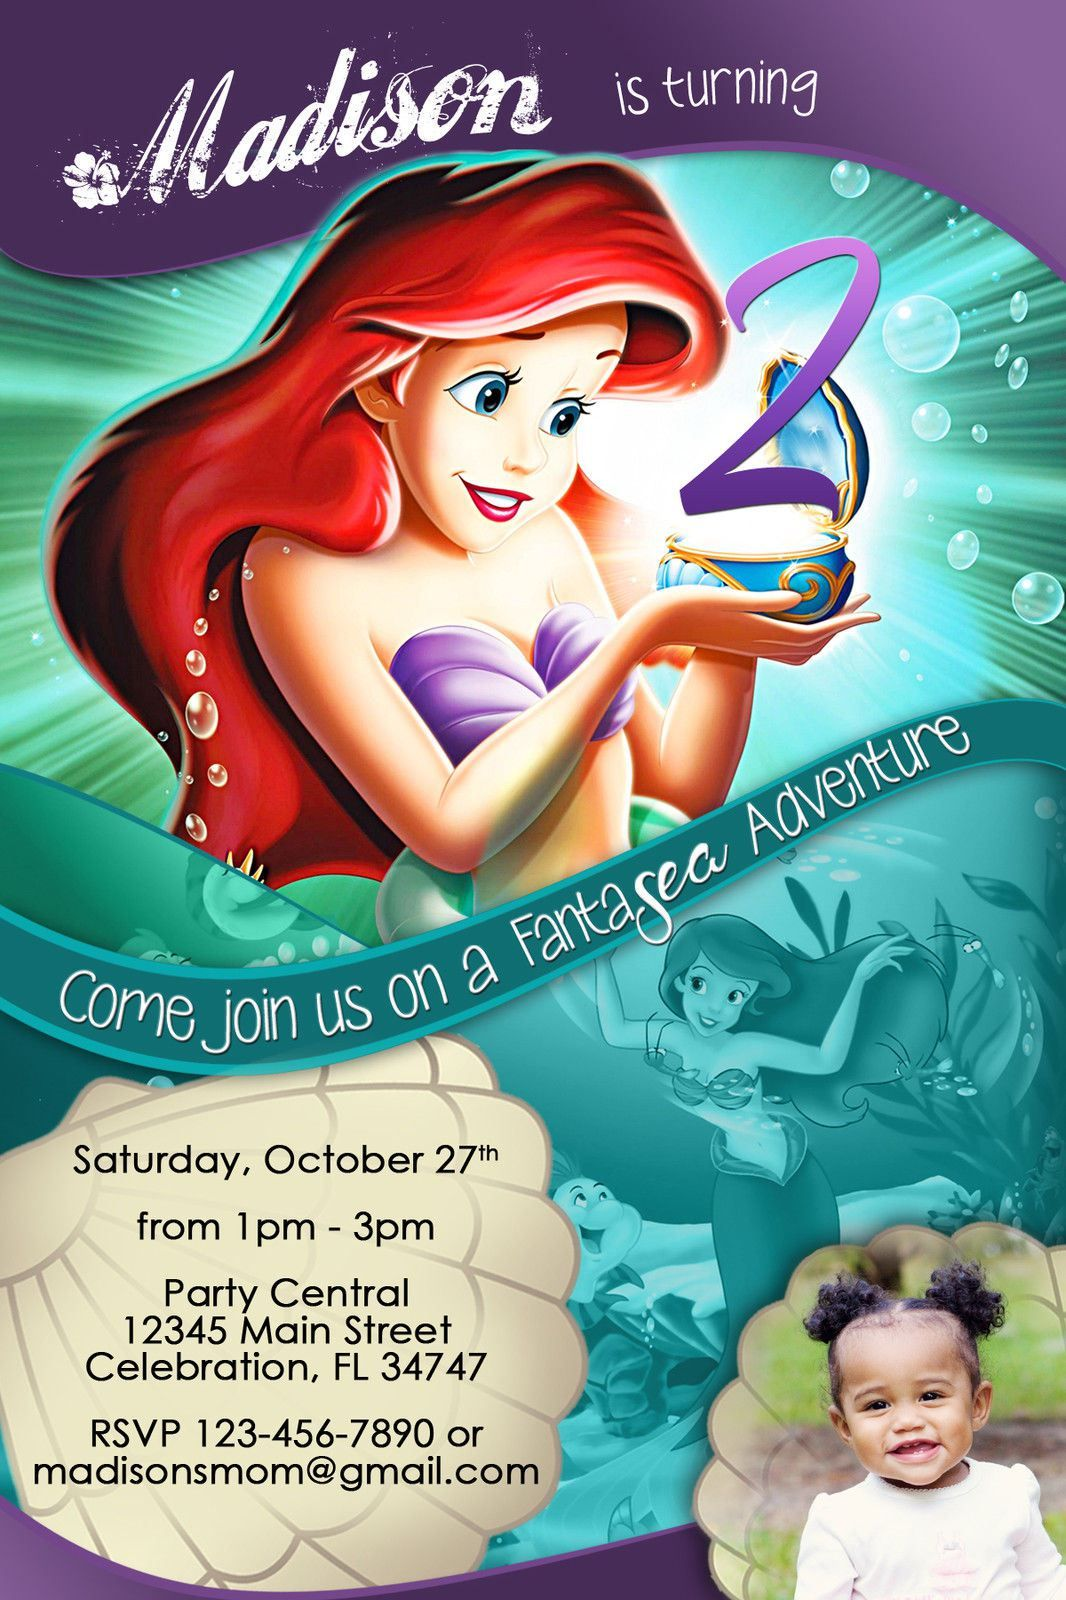 Free Ariel Birthday Party Invitations PRINCESS LITTLE MERMAID ARIEL